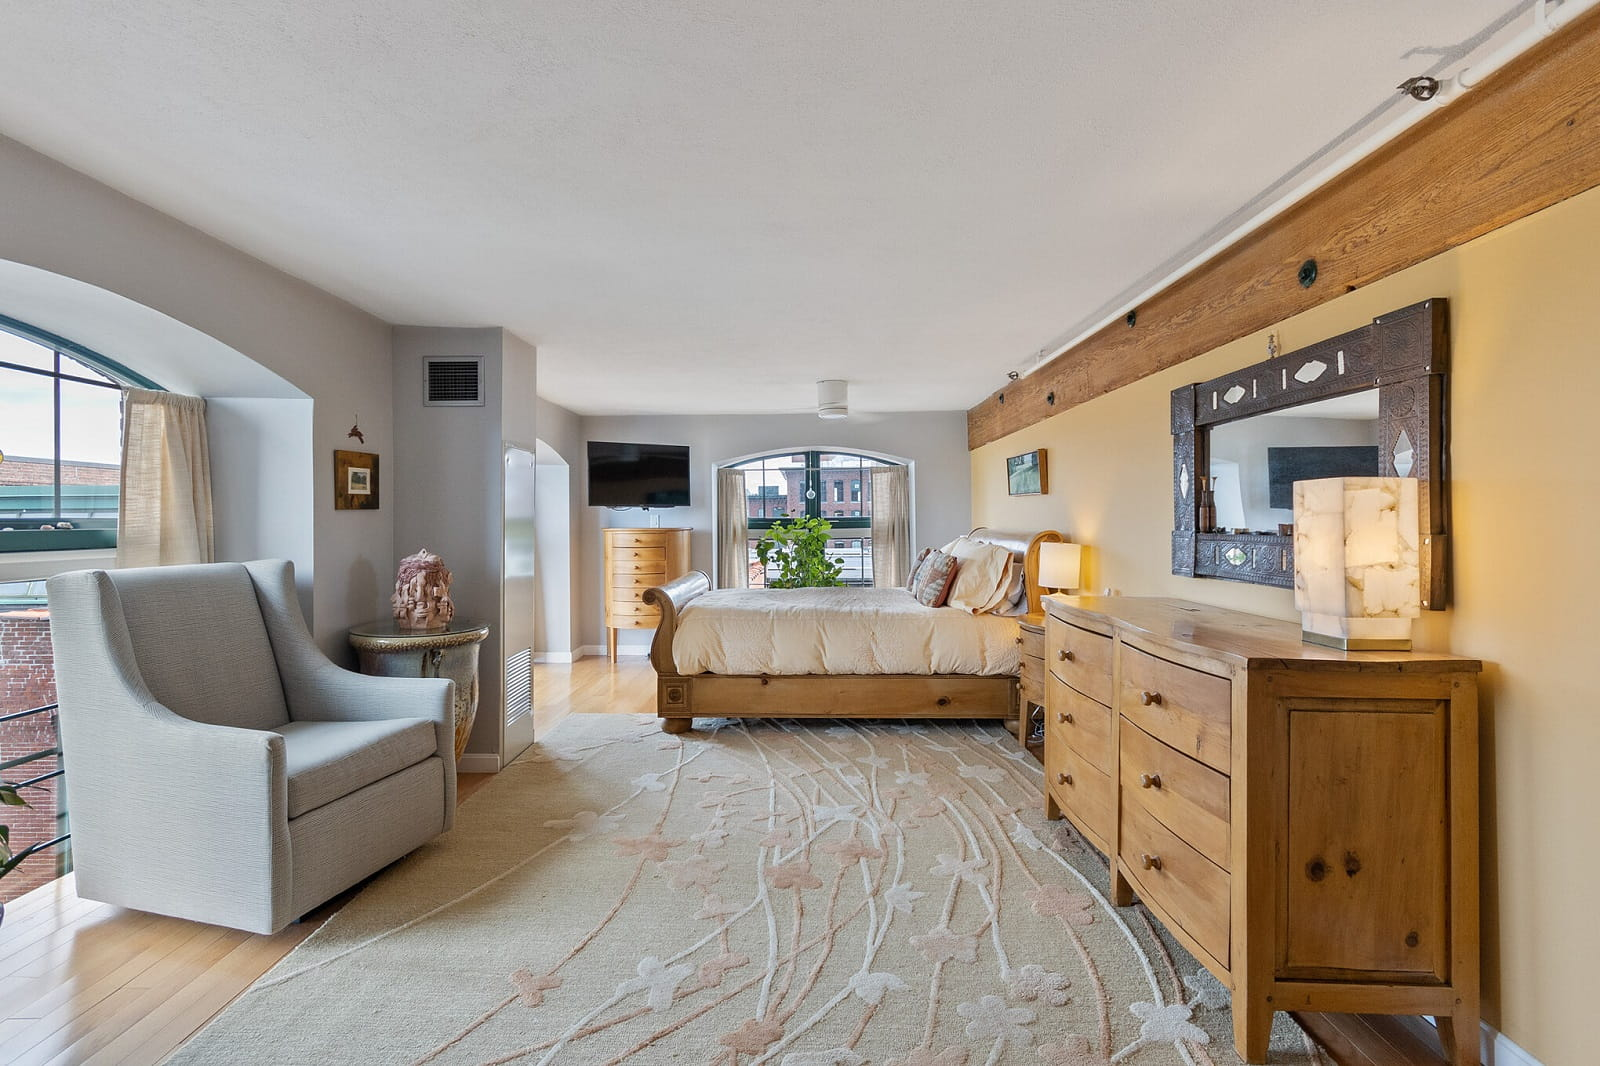 Real Estate Photography in Lowell - MA - USA - Bedroom View